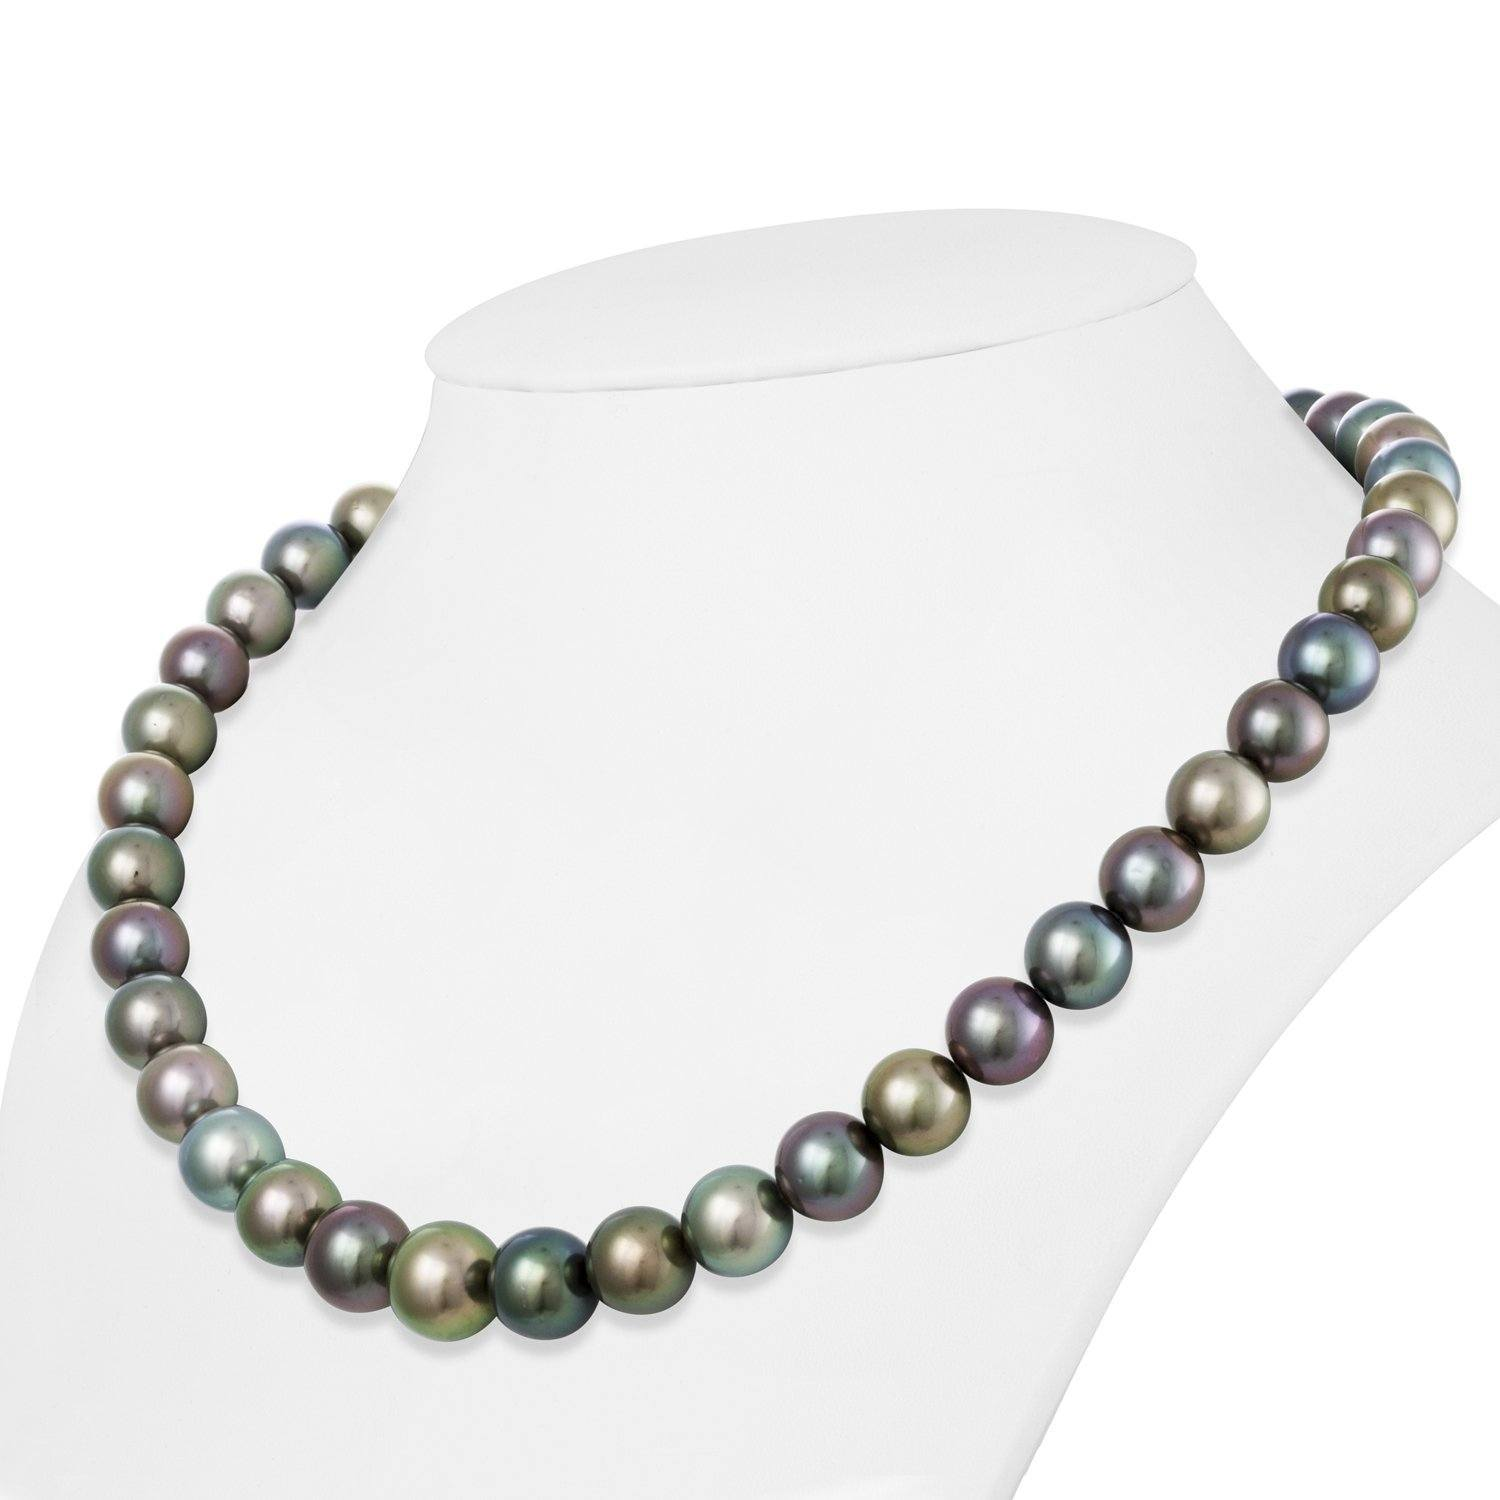 Dreamy Kaleidoscope Tahitian Pearl Necklace